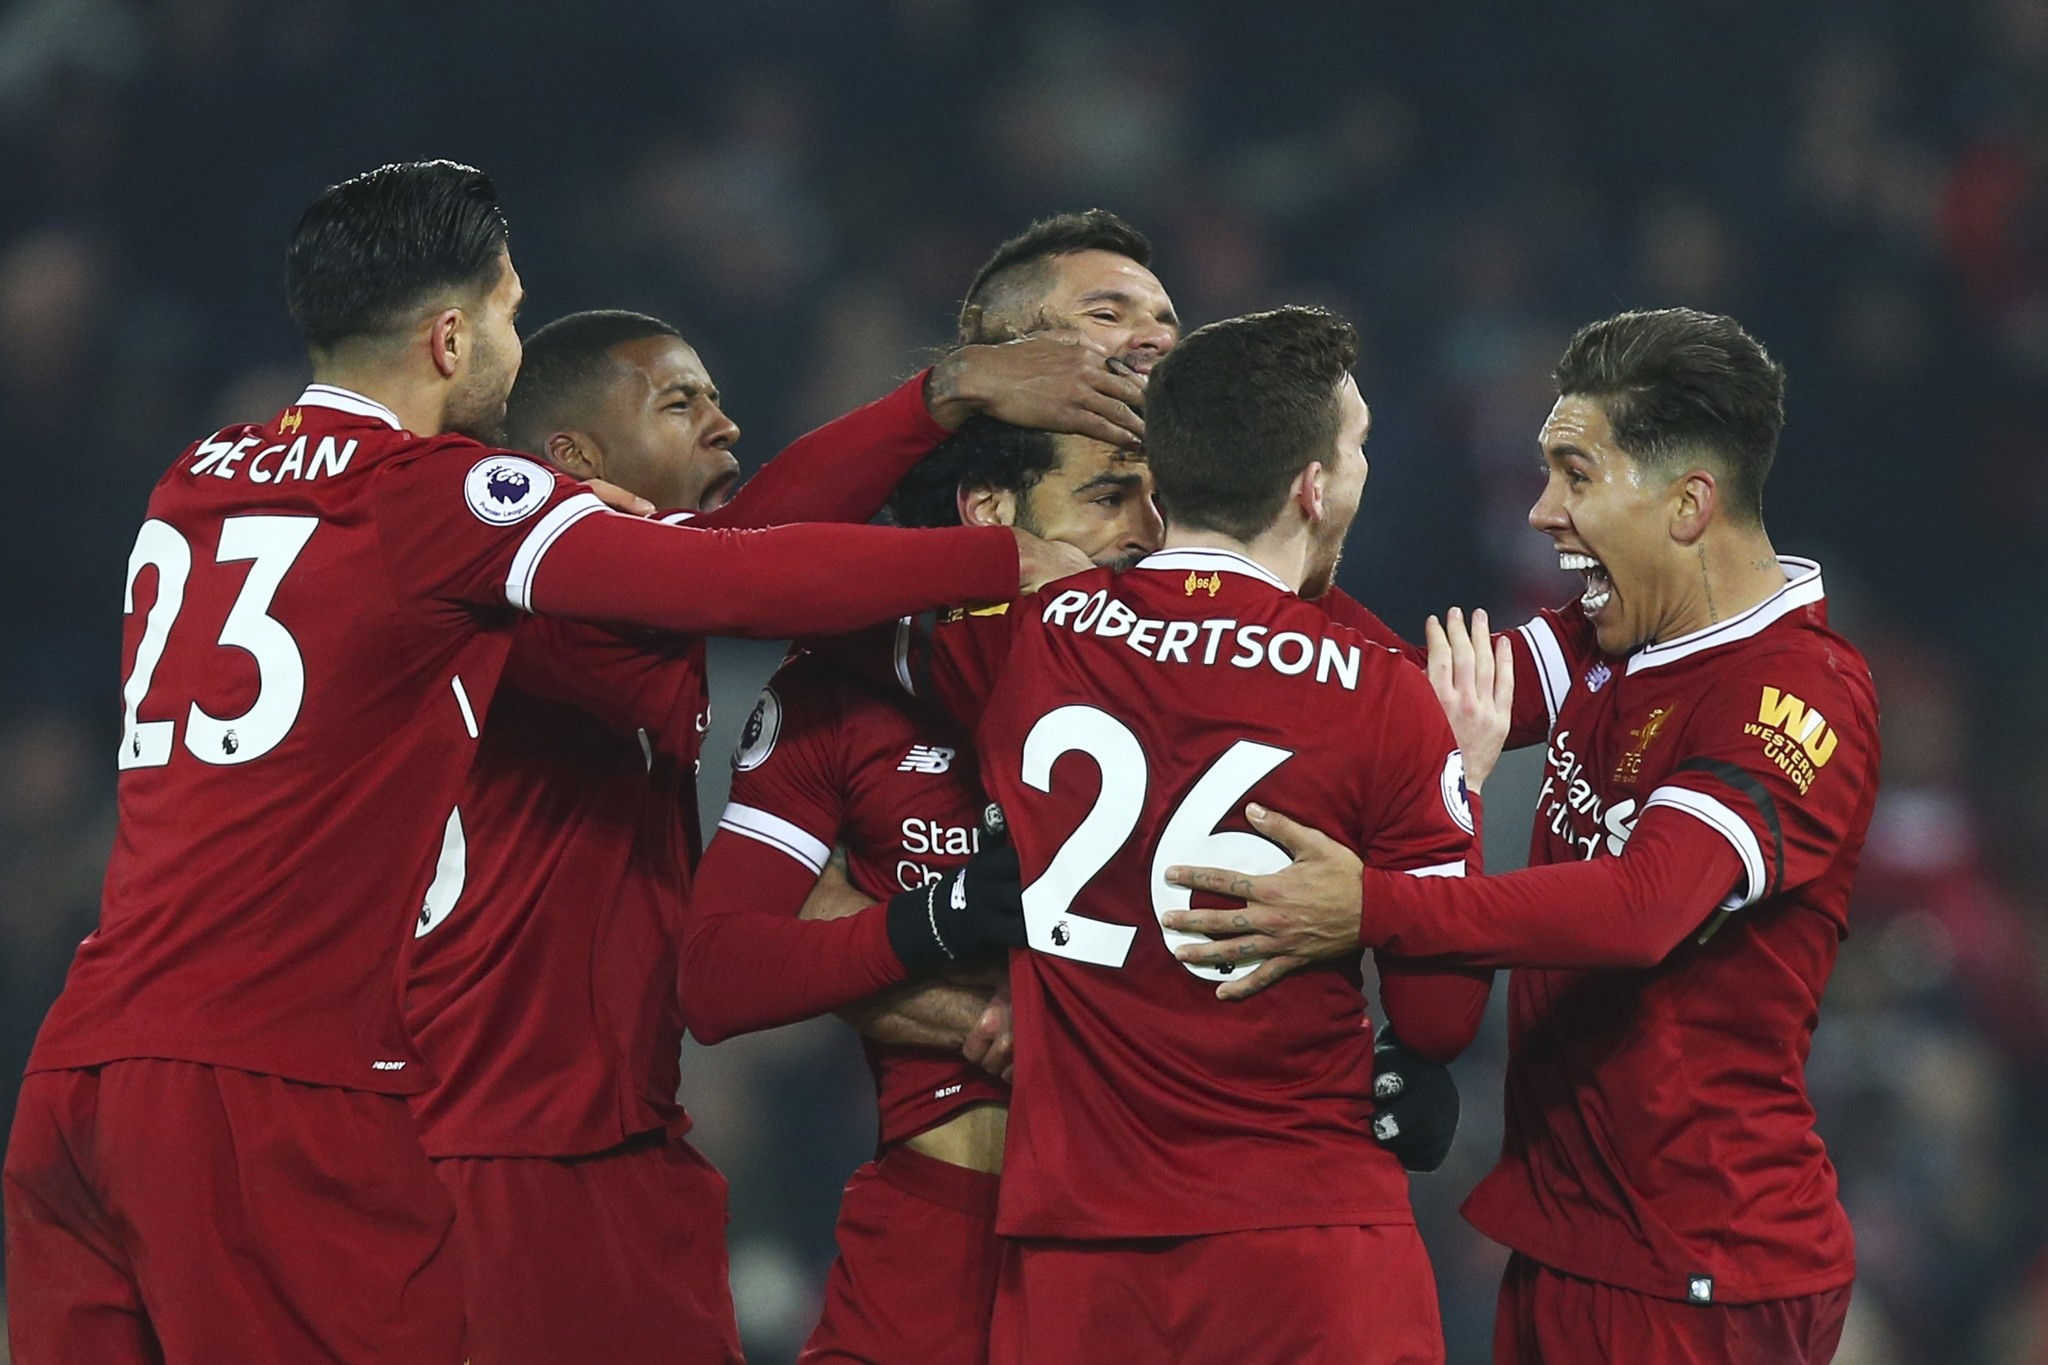 Liverpool players celebrate with Mohamed Salah, center, after he scored his side's fourth goal during the match between Liverpool and Manchester City. (AP Photo)